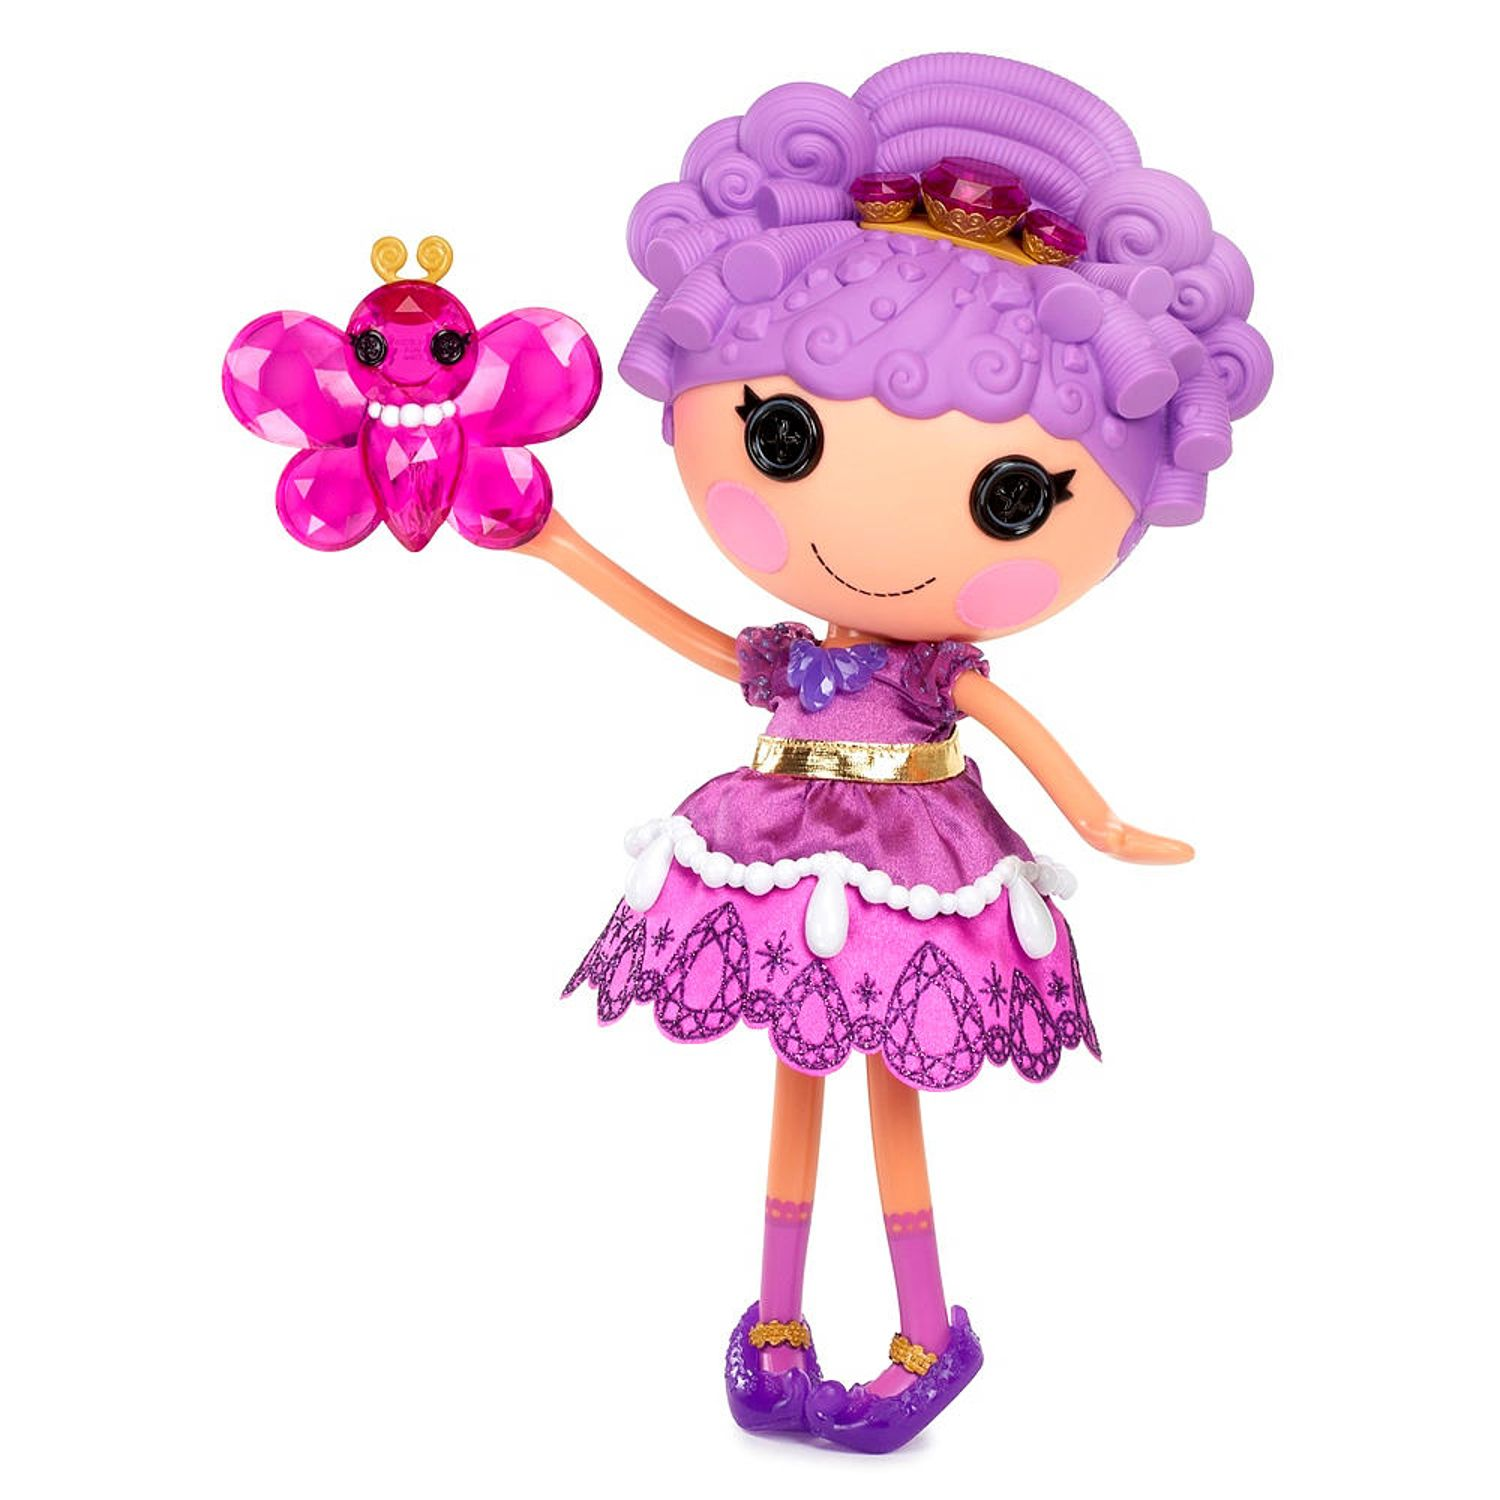 Charms Seven Carat (With images) Lalaloopsy, Lalaloopsy